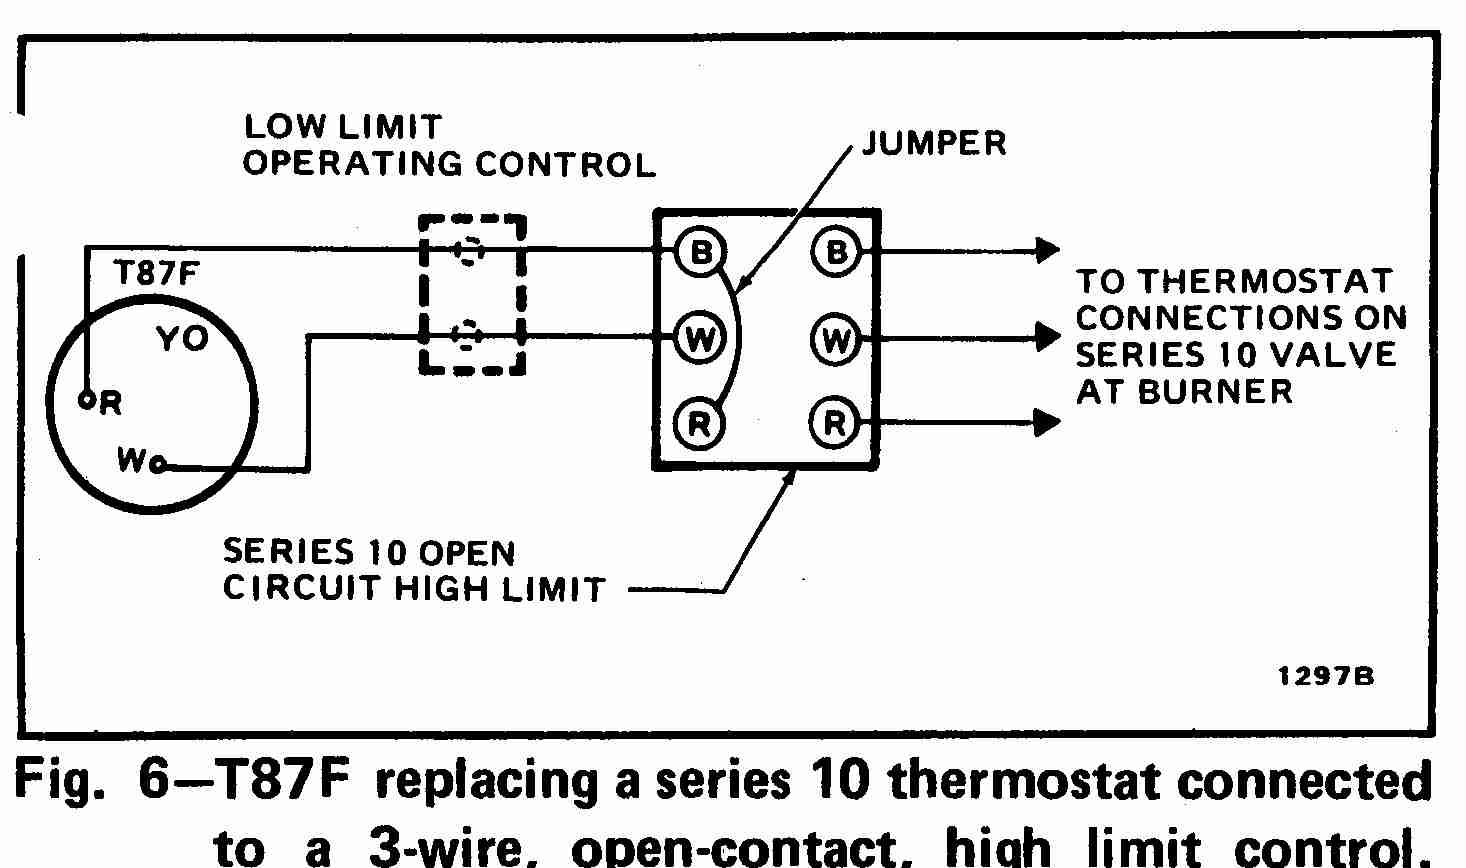 3 wire stove schematic wiring diagram room thermostat wiring diagrams for hvac systems #10